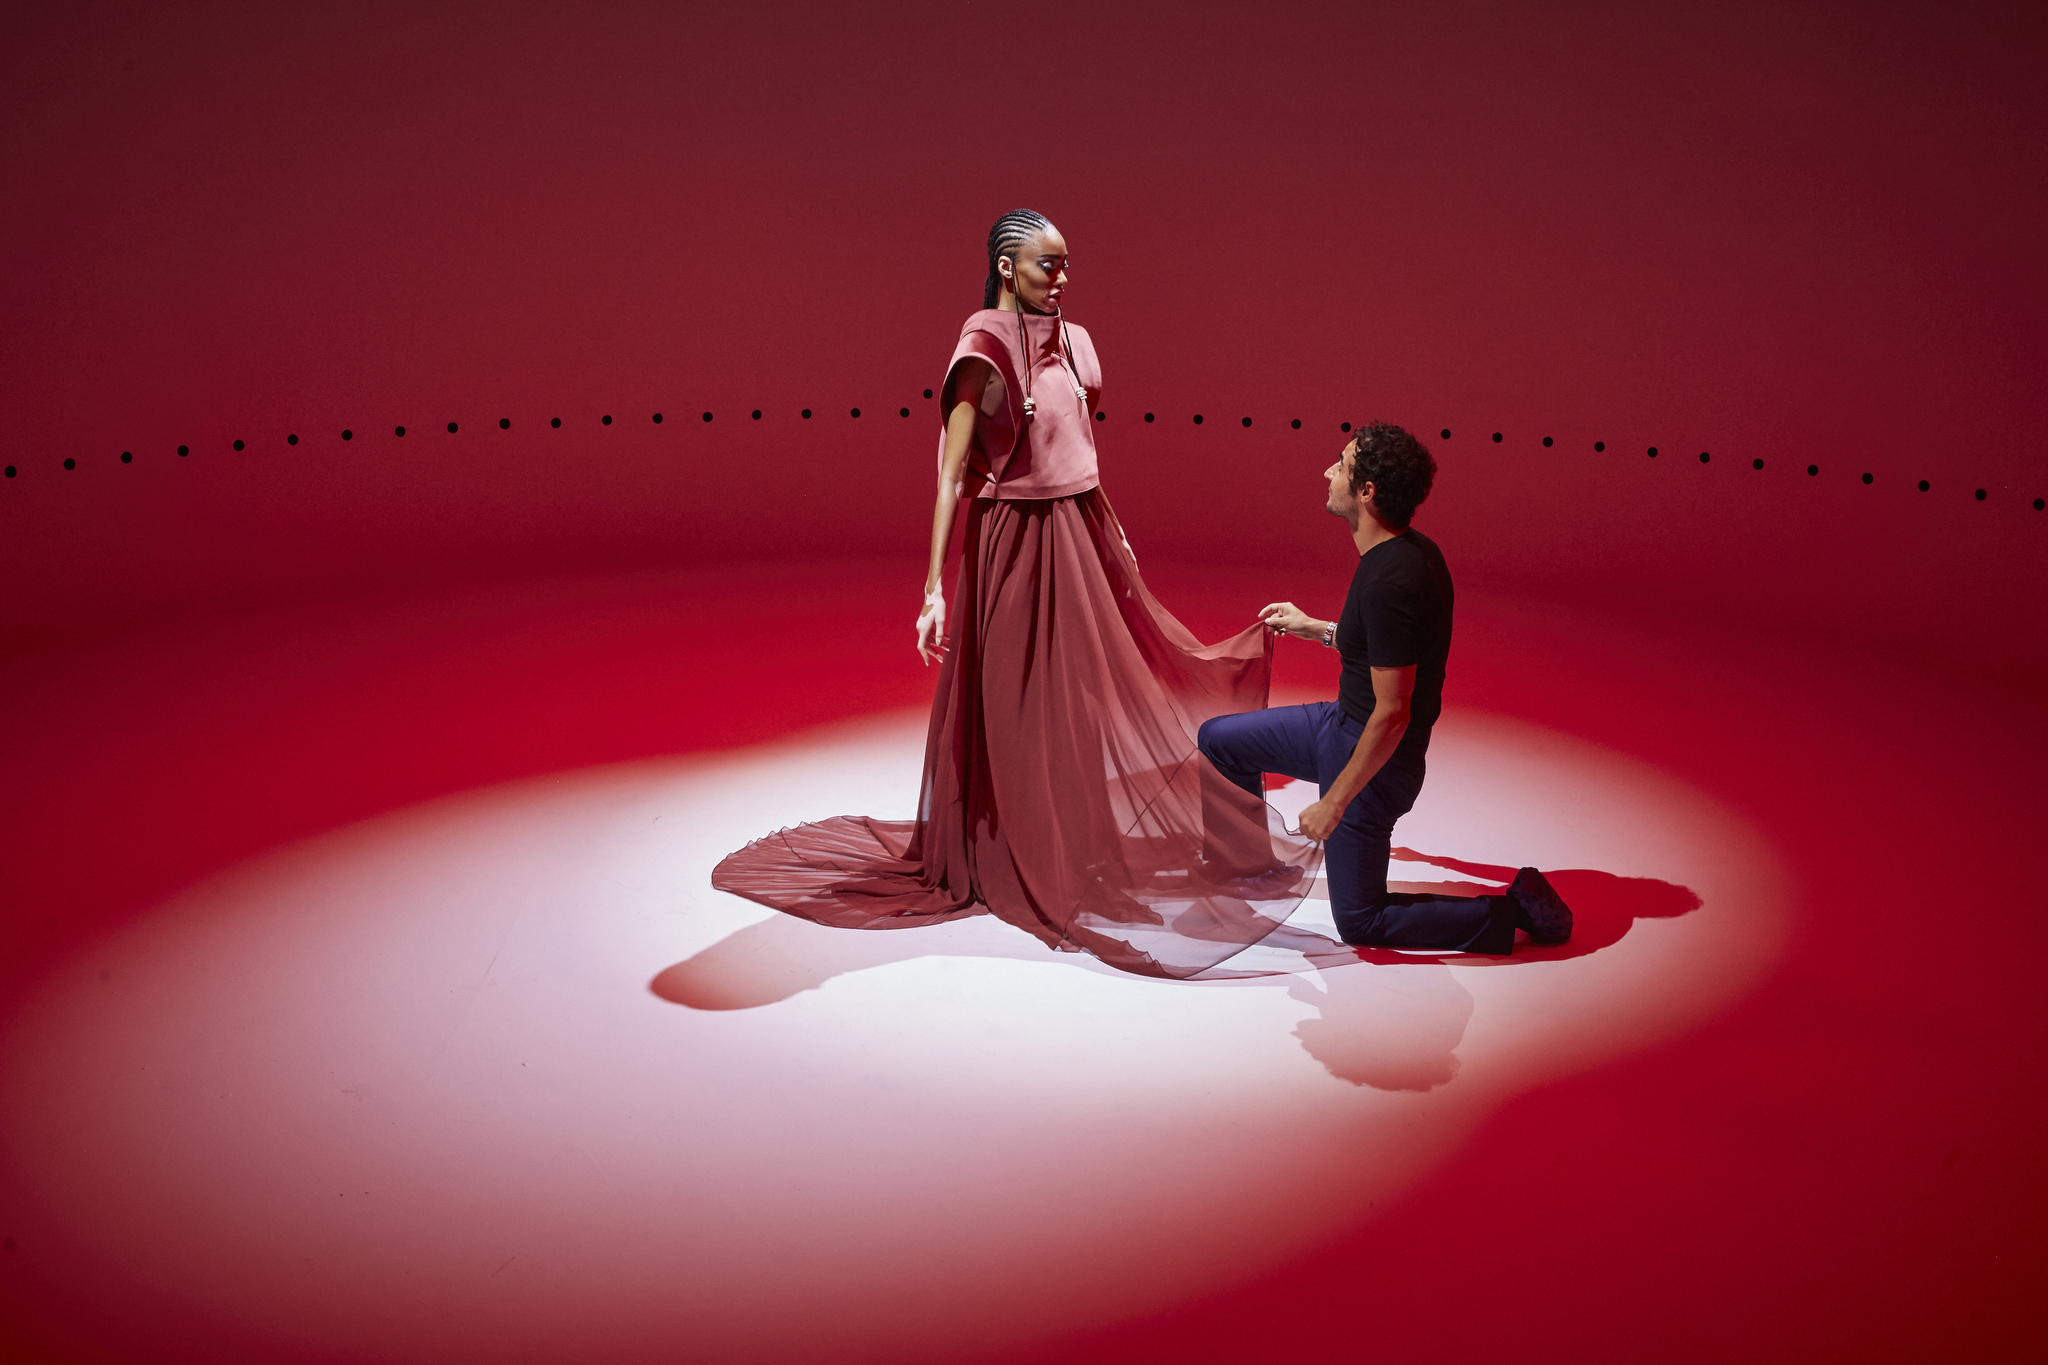 Inside the drum, Zac Posen plays Prince Charming to Winnie HarlowÕs Galactic Princess.